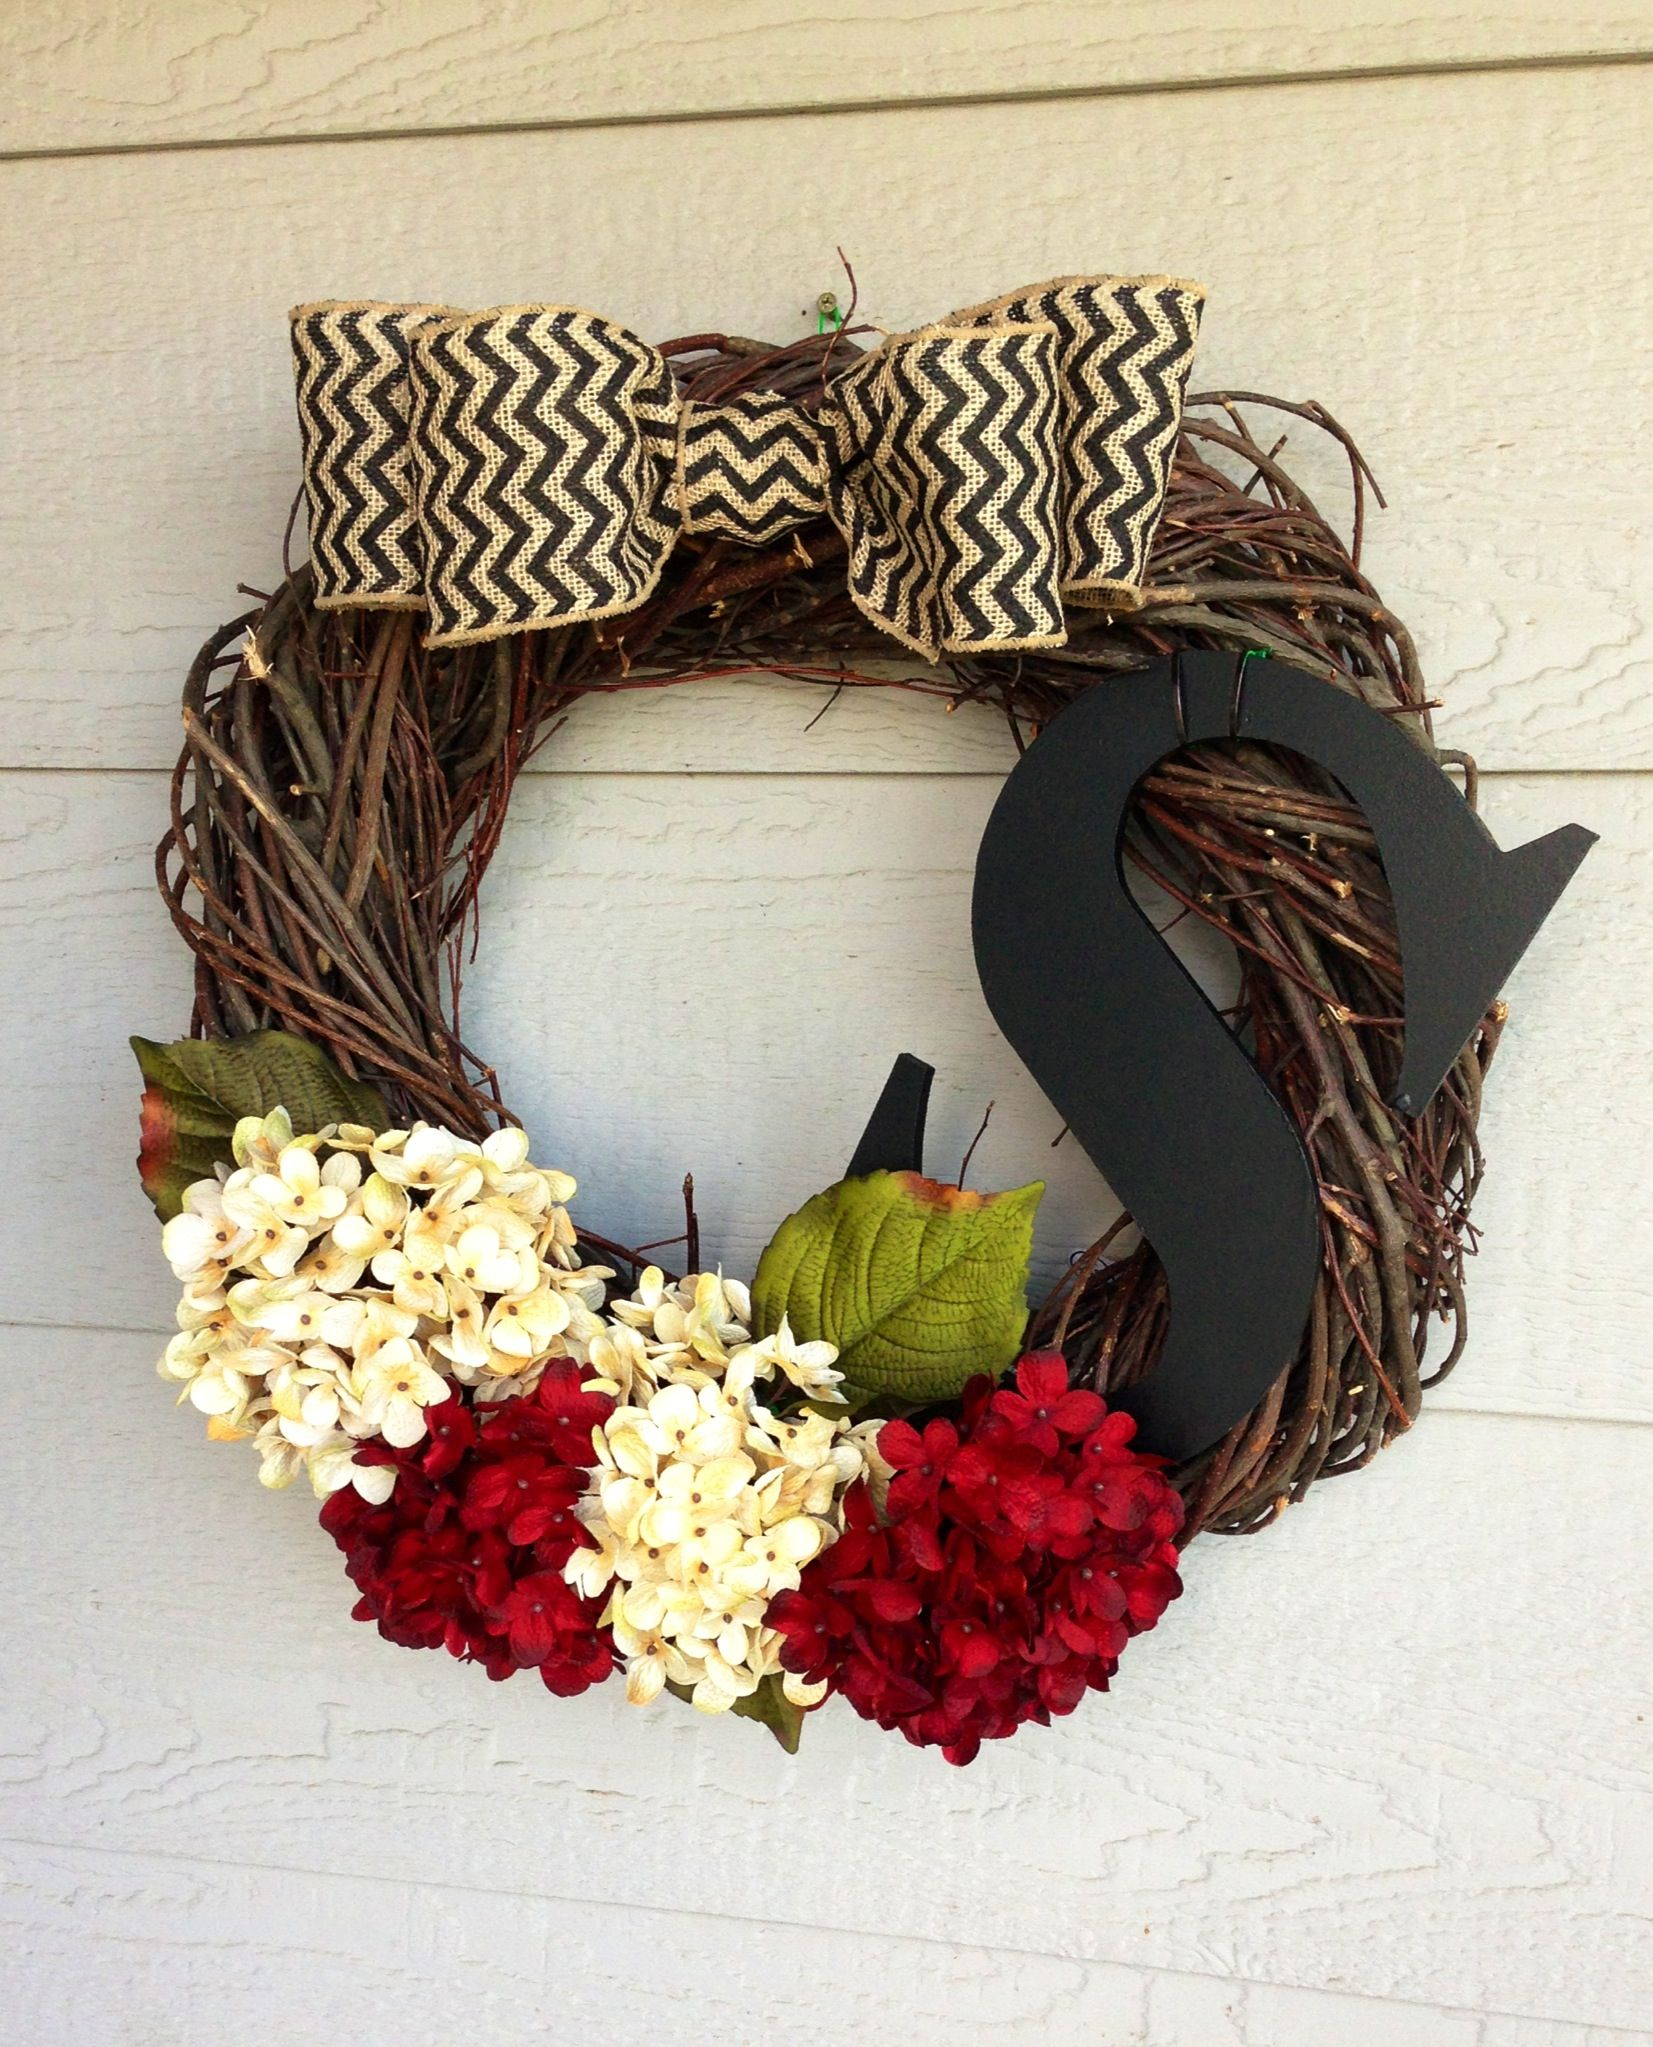 Home Made Wreath With Everything From Hobby Lobby 20 Hobby Lobby Christmas Wreath Crafts Diy Crafts